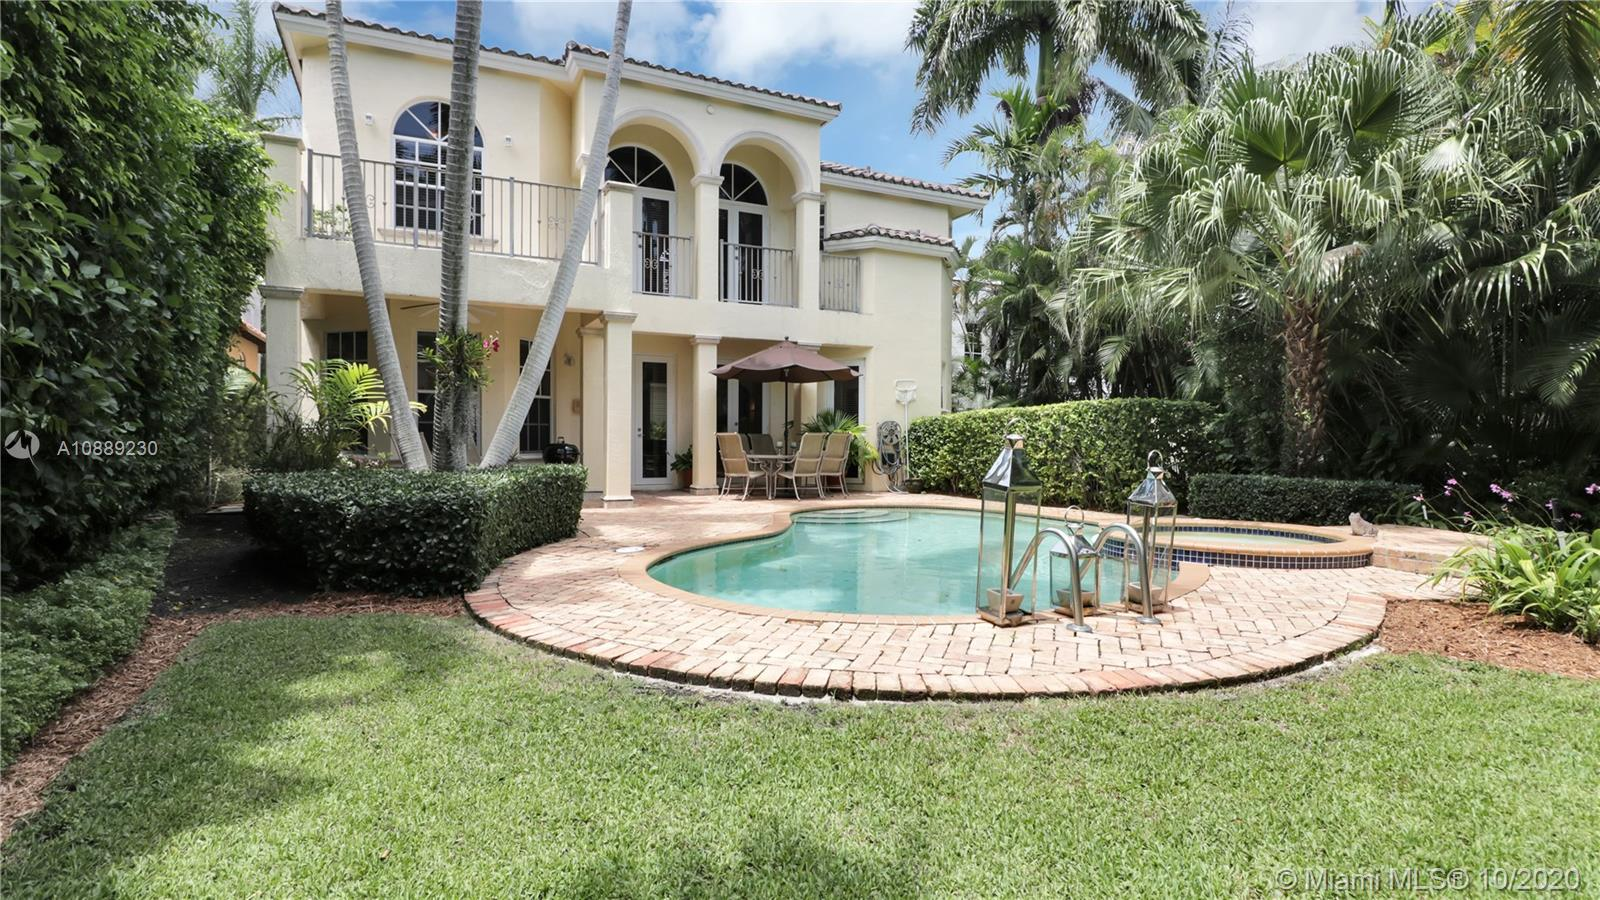 Built in 2000, this turn key 4/4 1/2 Mediterranean gated home located in Coral Gables is minutes from Miracle Mile. Nothing was spared with this beautiful yet functional layout. Special features include vaulted ceiling in living room, foyer, formal living and dining room, guest bath, pantry, laundry room, recently updated kitchen in 2020, family room, breakfast area, large downstairs bedroom with full bath, and huge two-car garage. Upstairs includes over 9 ft. ceilings, two bedrooms, each with en-suite baths & walk-in closets, and a luxurious master bedroom with two walk-in closets, and a spacious renovated master bathroom. Master bedroom has 2 separate charming balconies-one overlooking the private interior courtyard, and the other overlooking the pool/spa and mature garden.